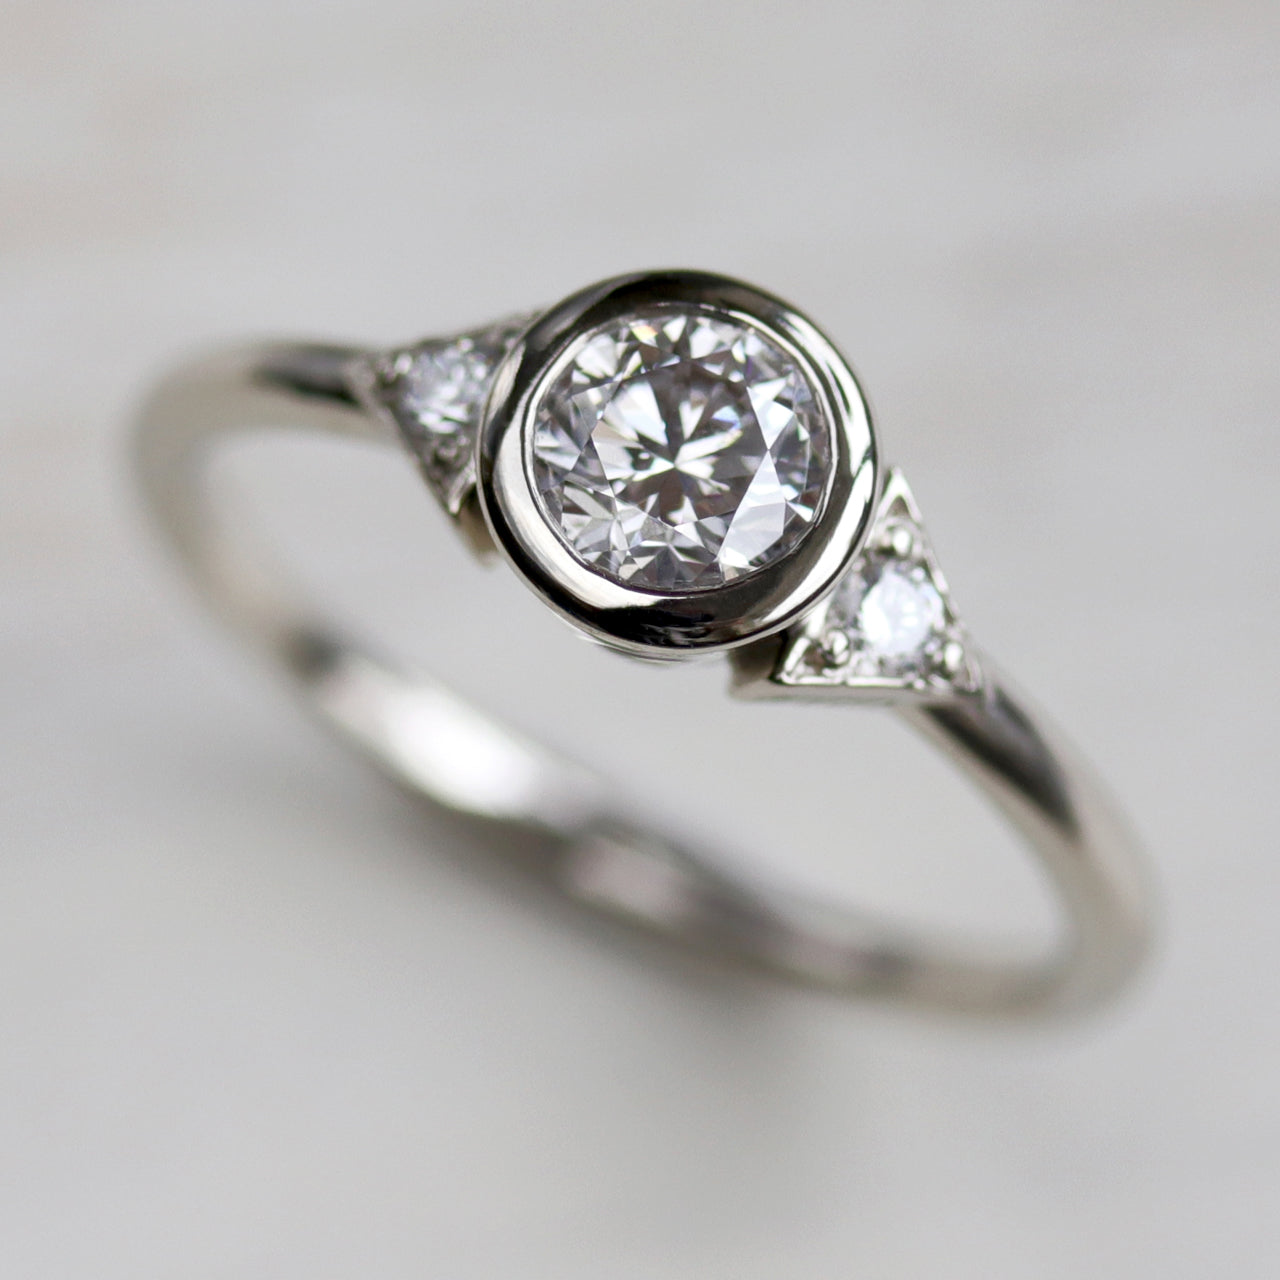 Deco Three Stone Ring >7.25, Engagement Ring - Aide-mémoire Jewelry